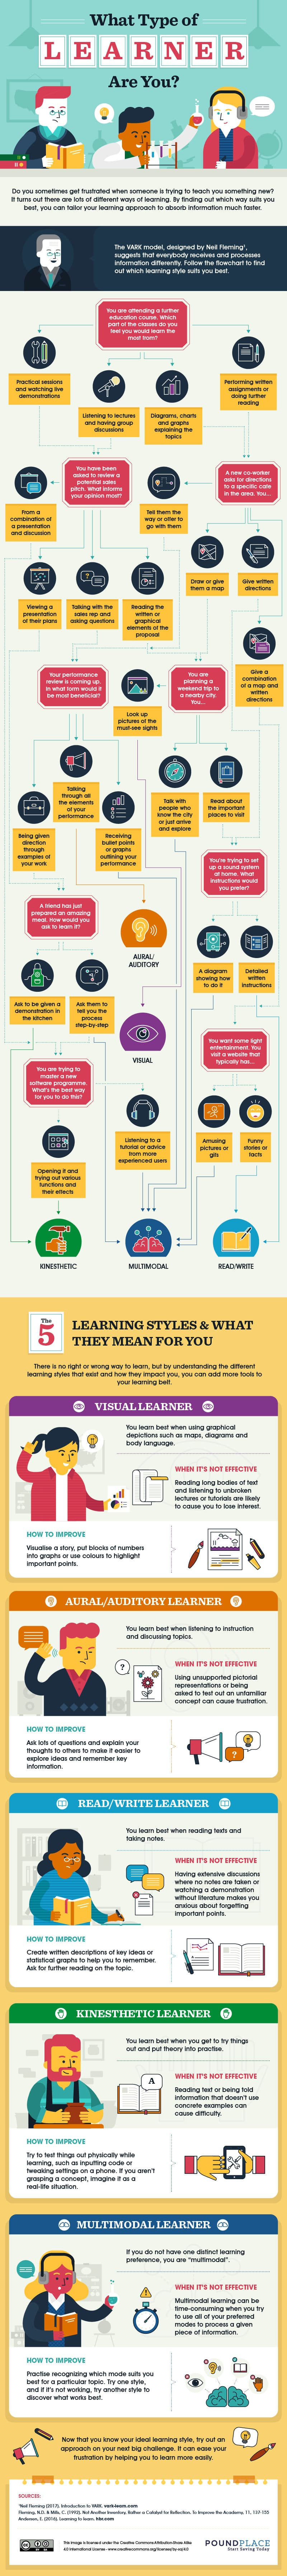 What type of learner are you? Did you know we all learn very differently? By understanding YOUR learning type, you'll better set yourself up for success to learn quickly and effectively in your studies, your job or with anything you're passionate about!